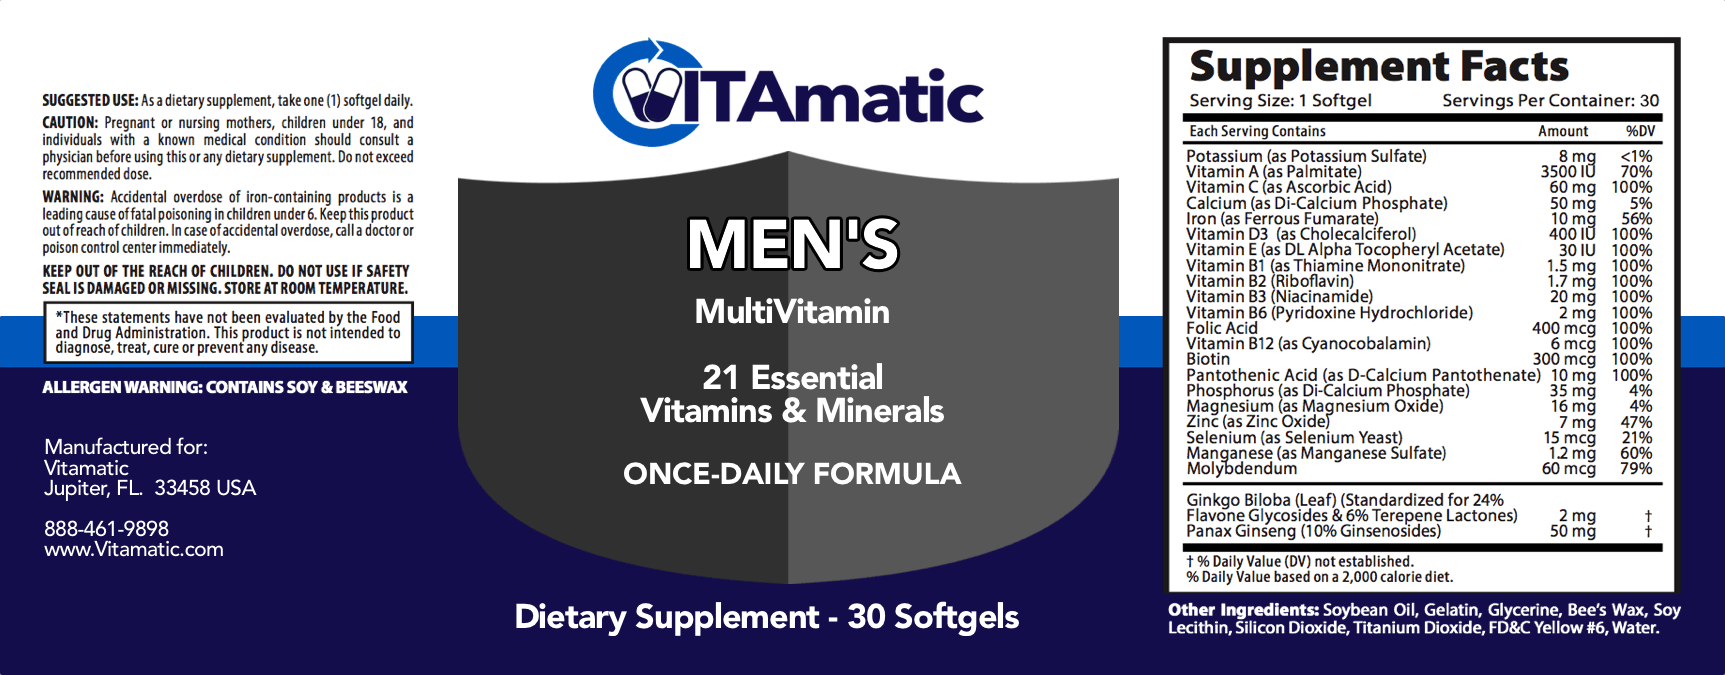 mens_multivitamin_label